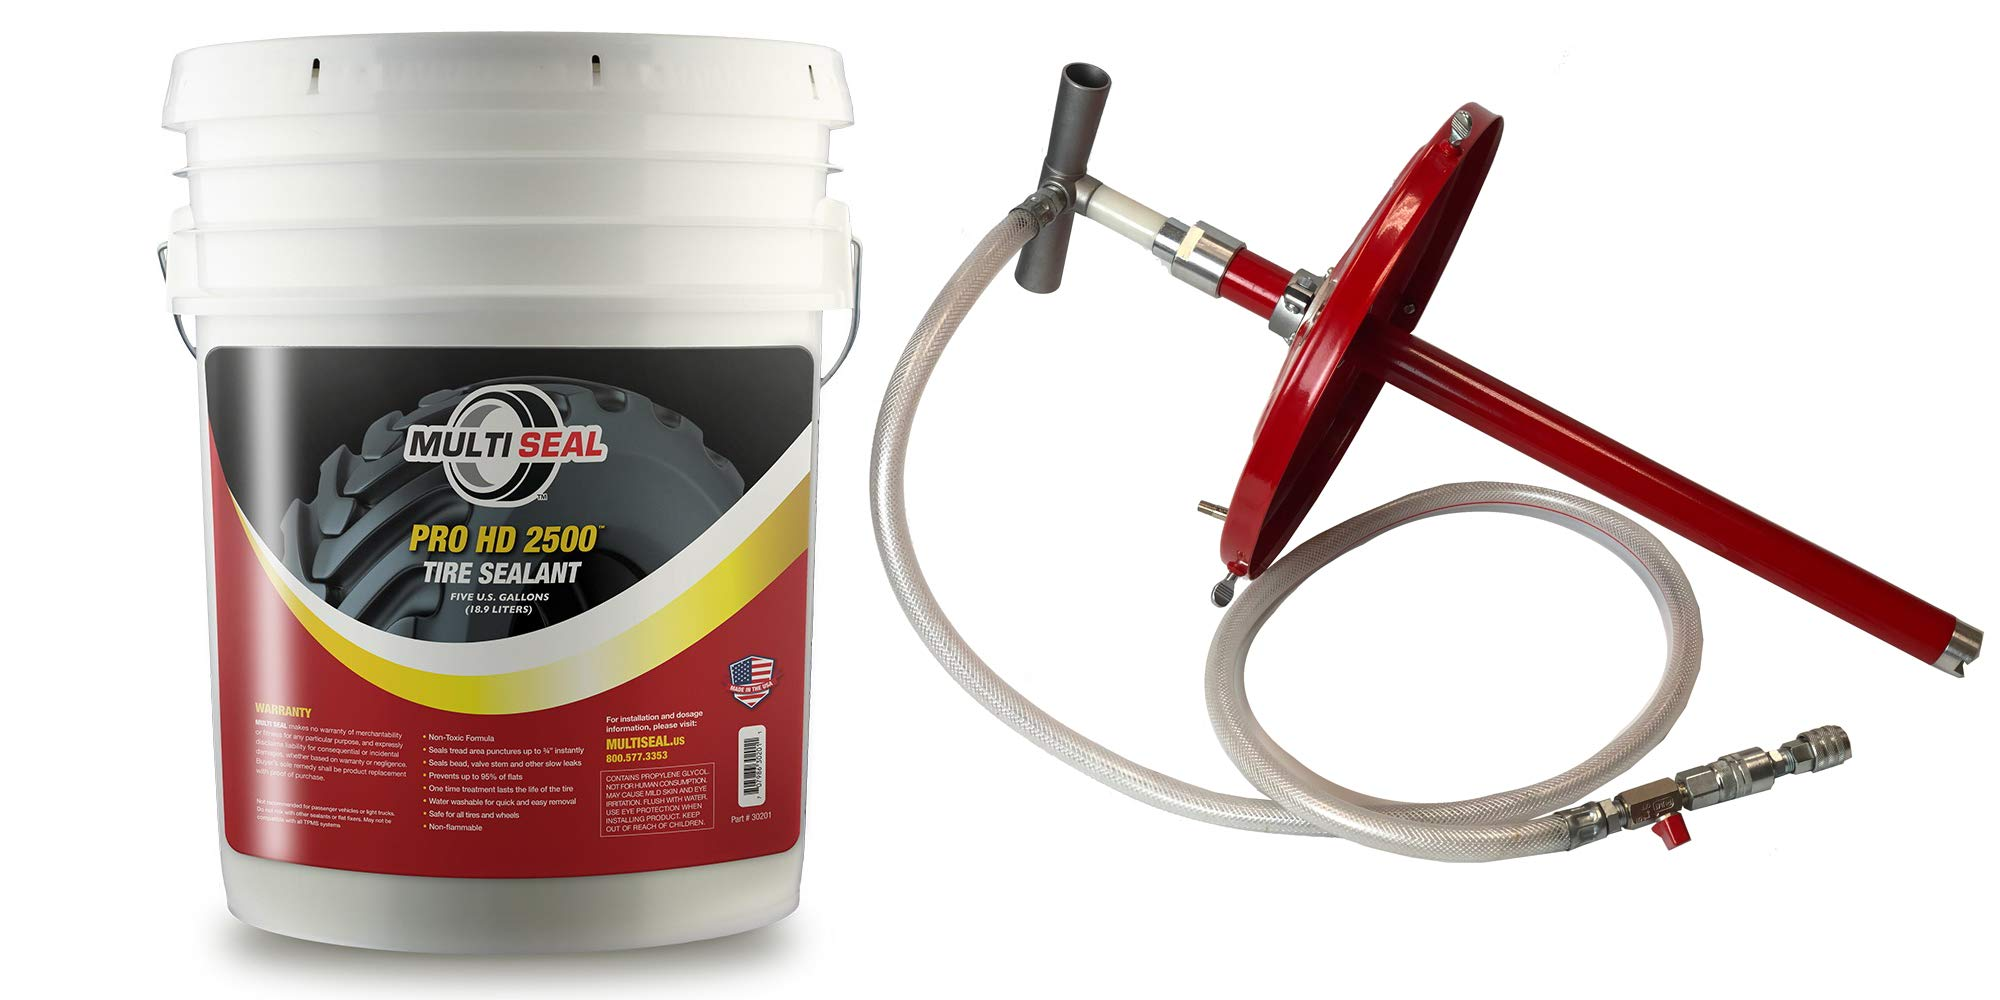 MULTI SEAL PRO HD 2500 - Our Workhorse Industrial Grade Tire Sealant Designed for Heavy Industrial and Agricultural Use, 5-Gallon Pail with Pump